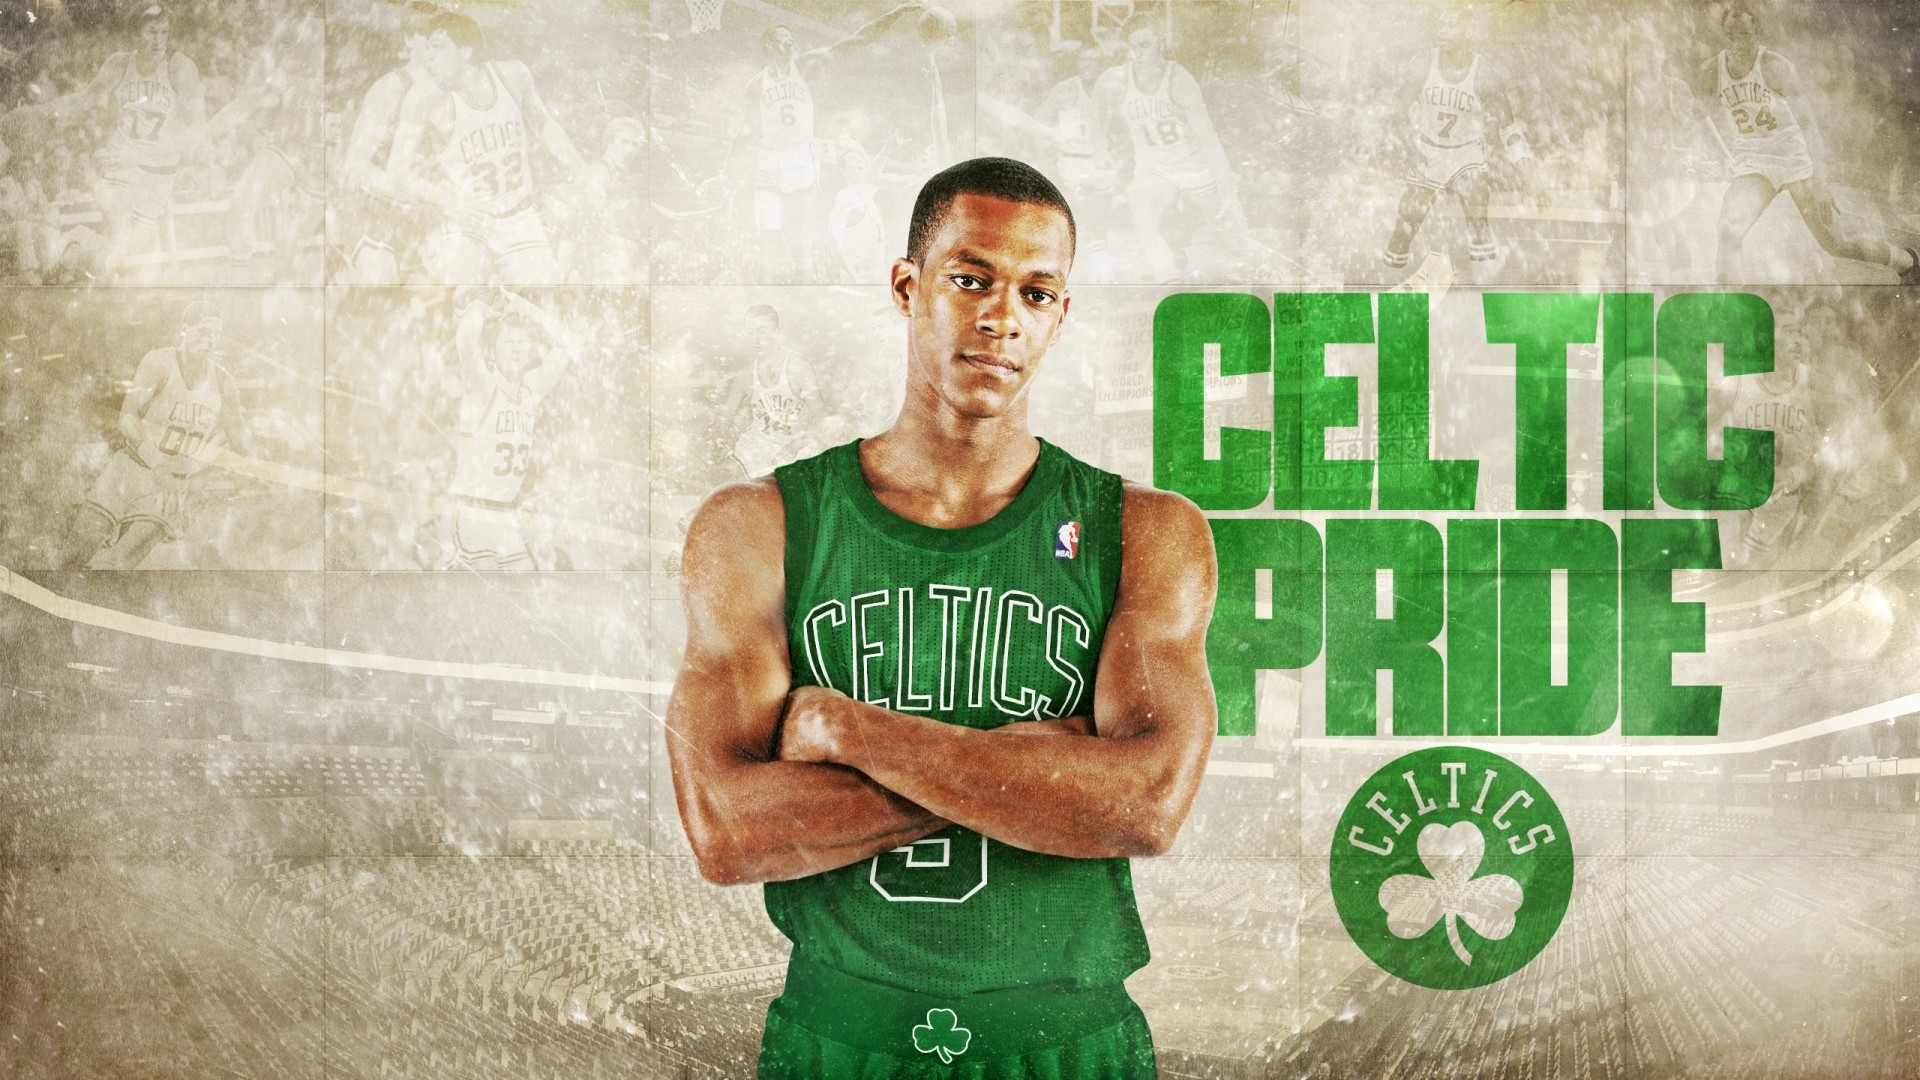 Boston Celtics HD Wallpapers (64+ Images